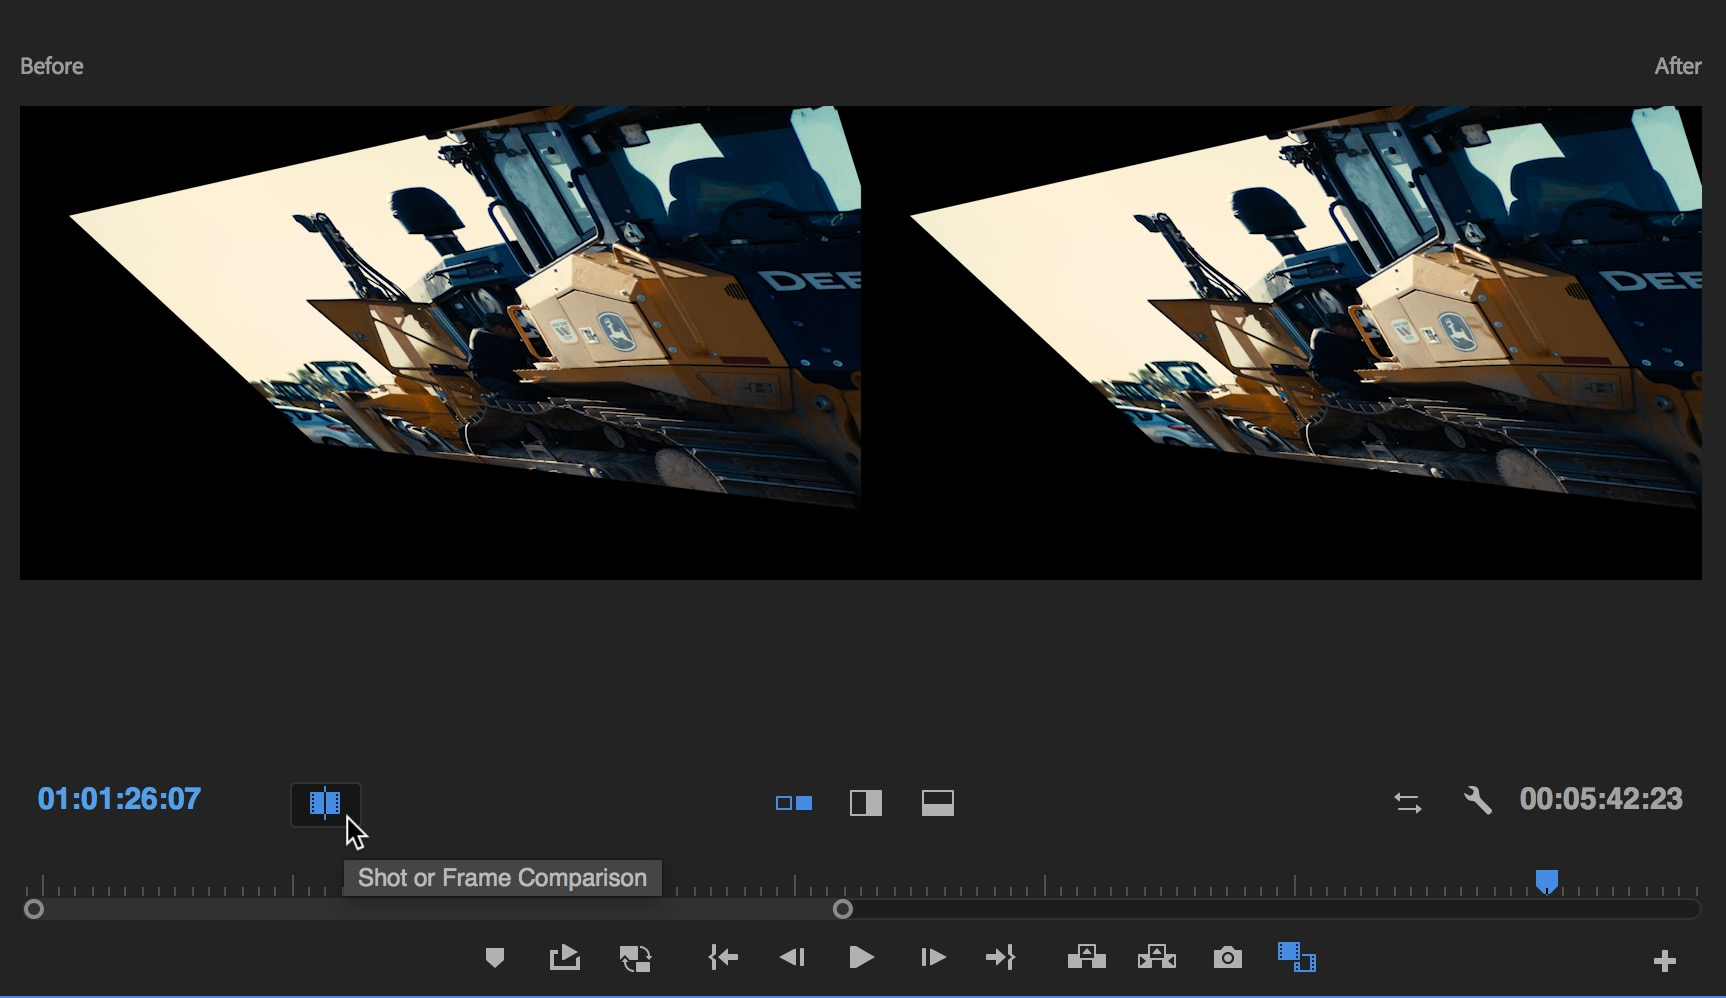 Adobe Premiere Pro 2018 NAB Update: Comparison View, Color Match and Timecode 9